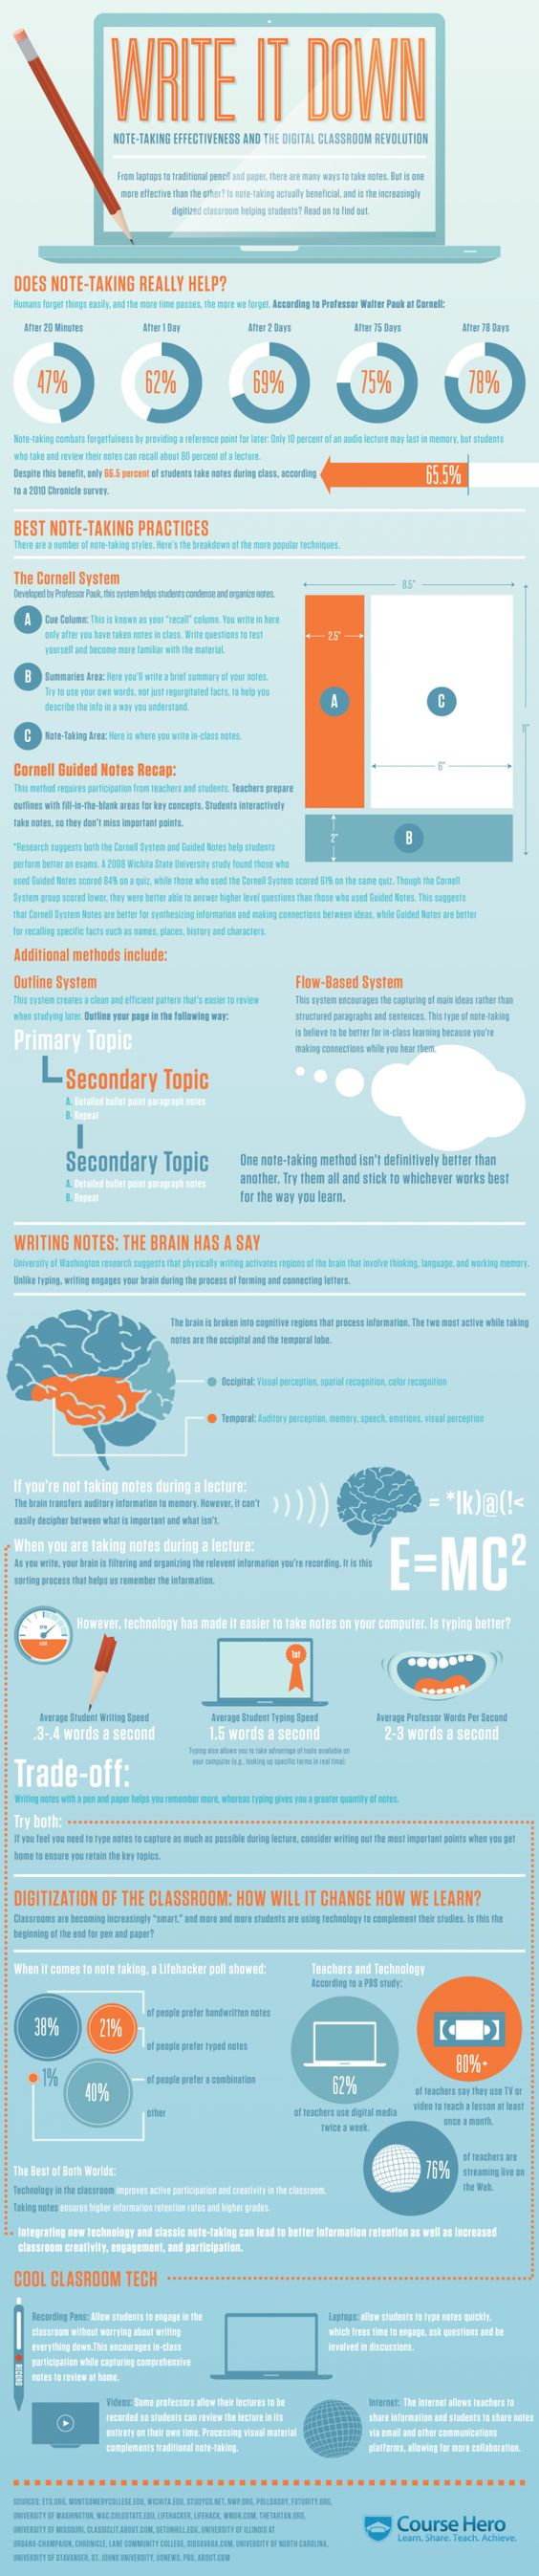 This graphic goes over the Cornell style of note-taking, which is the most proven way to help students remember. Taking notes can be a study strategy in itself!